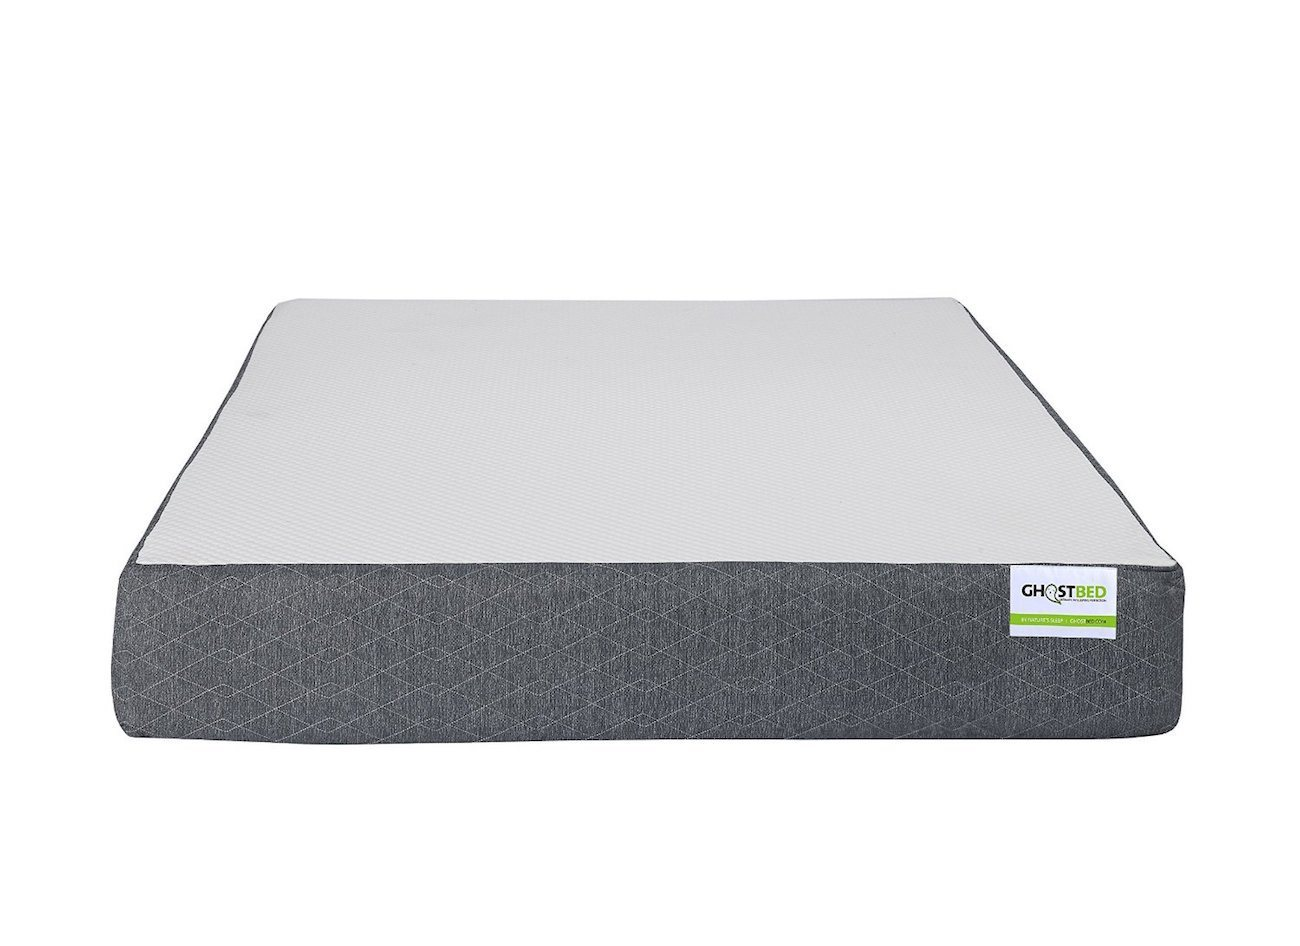 GhostBed Latex and Gel Memory Foam Mattress Gad Flow